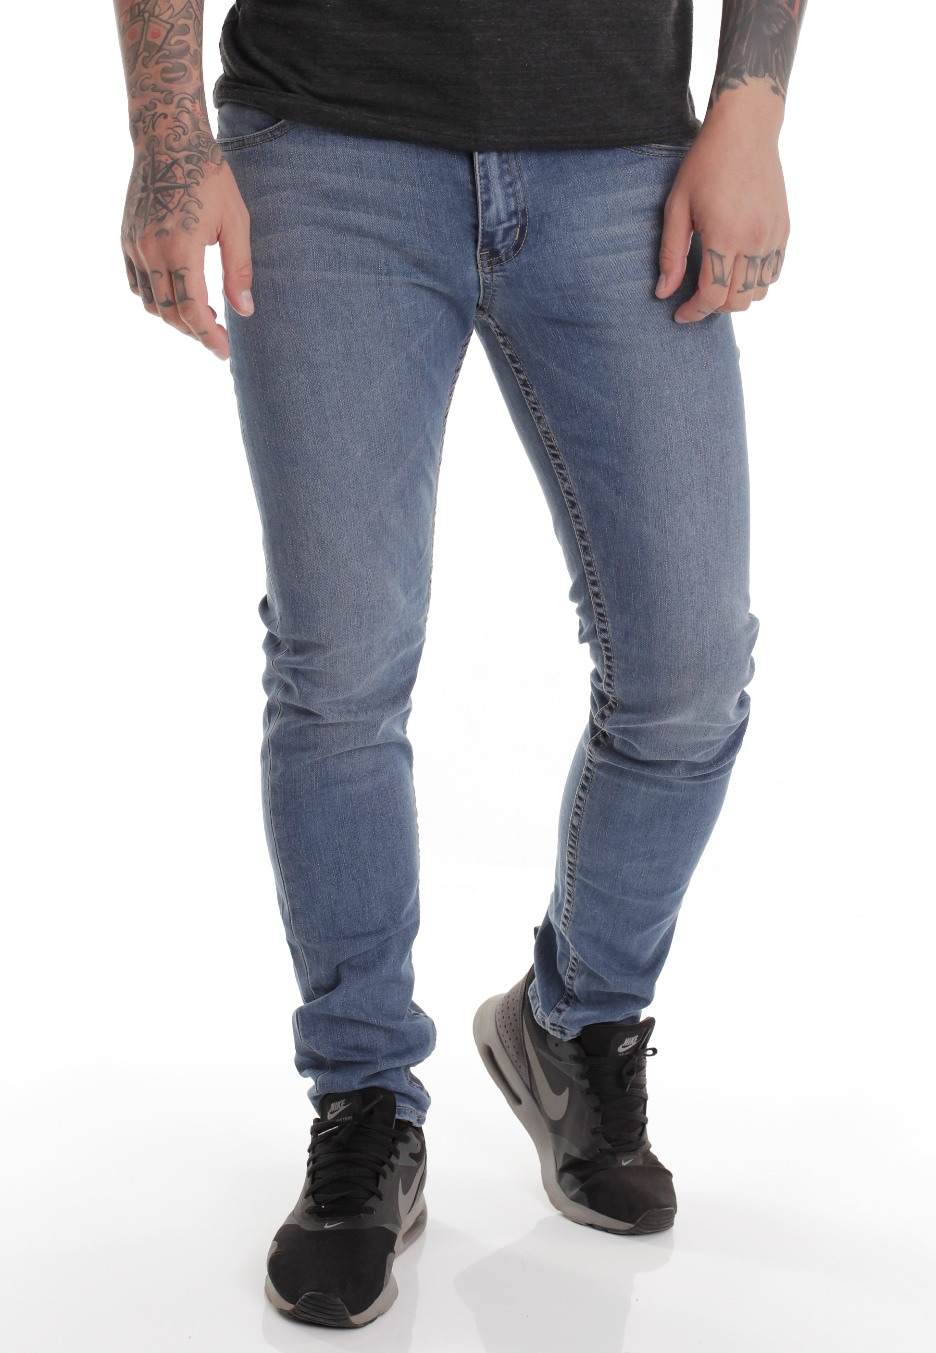 Discount denim - Levi's jeans, Wrangler jeans, Edwin Jeans, Lee Jeans & Nudie Jeans. With fast UK delivery, Jean Store offer the very best brands including Wrangler, Lee and Levi's jeans. We stock both mens jeans & womens jeans and all of our jeans are available at low prices.